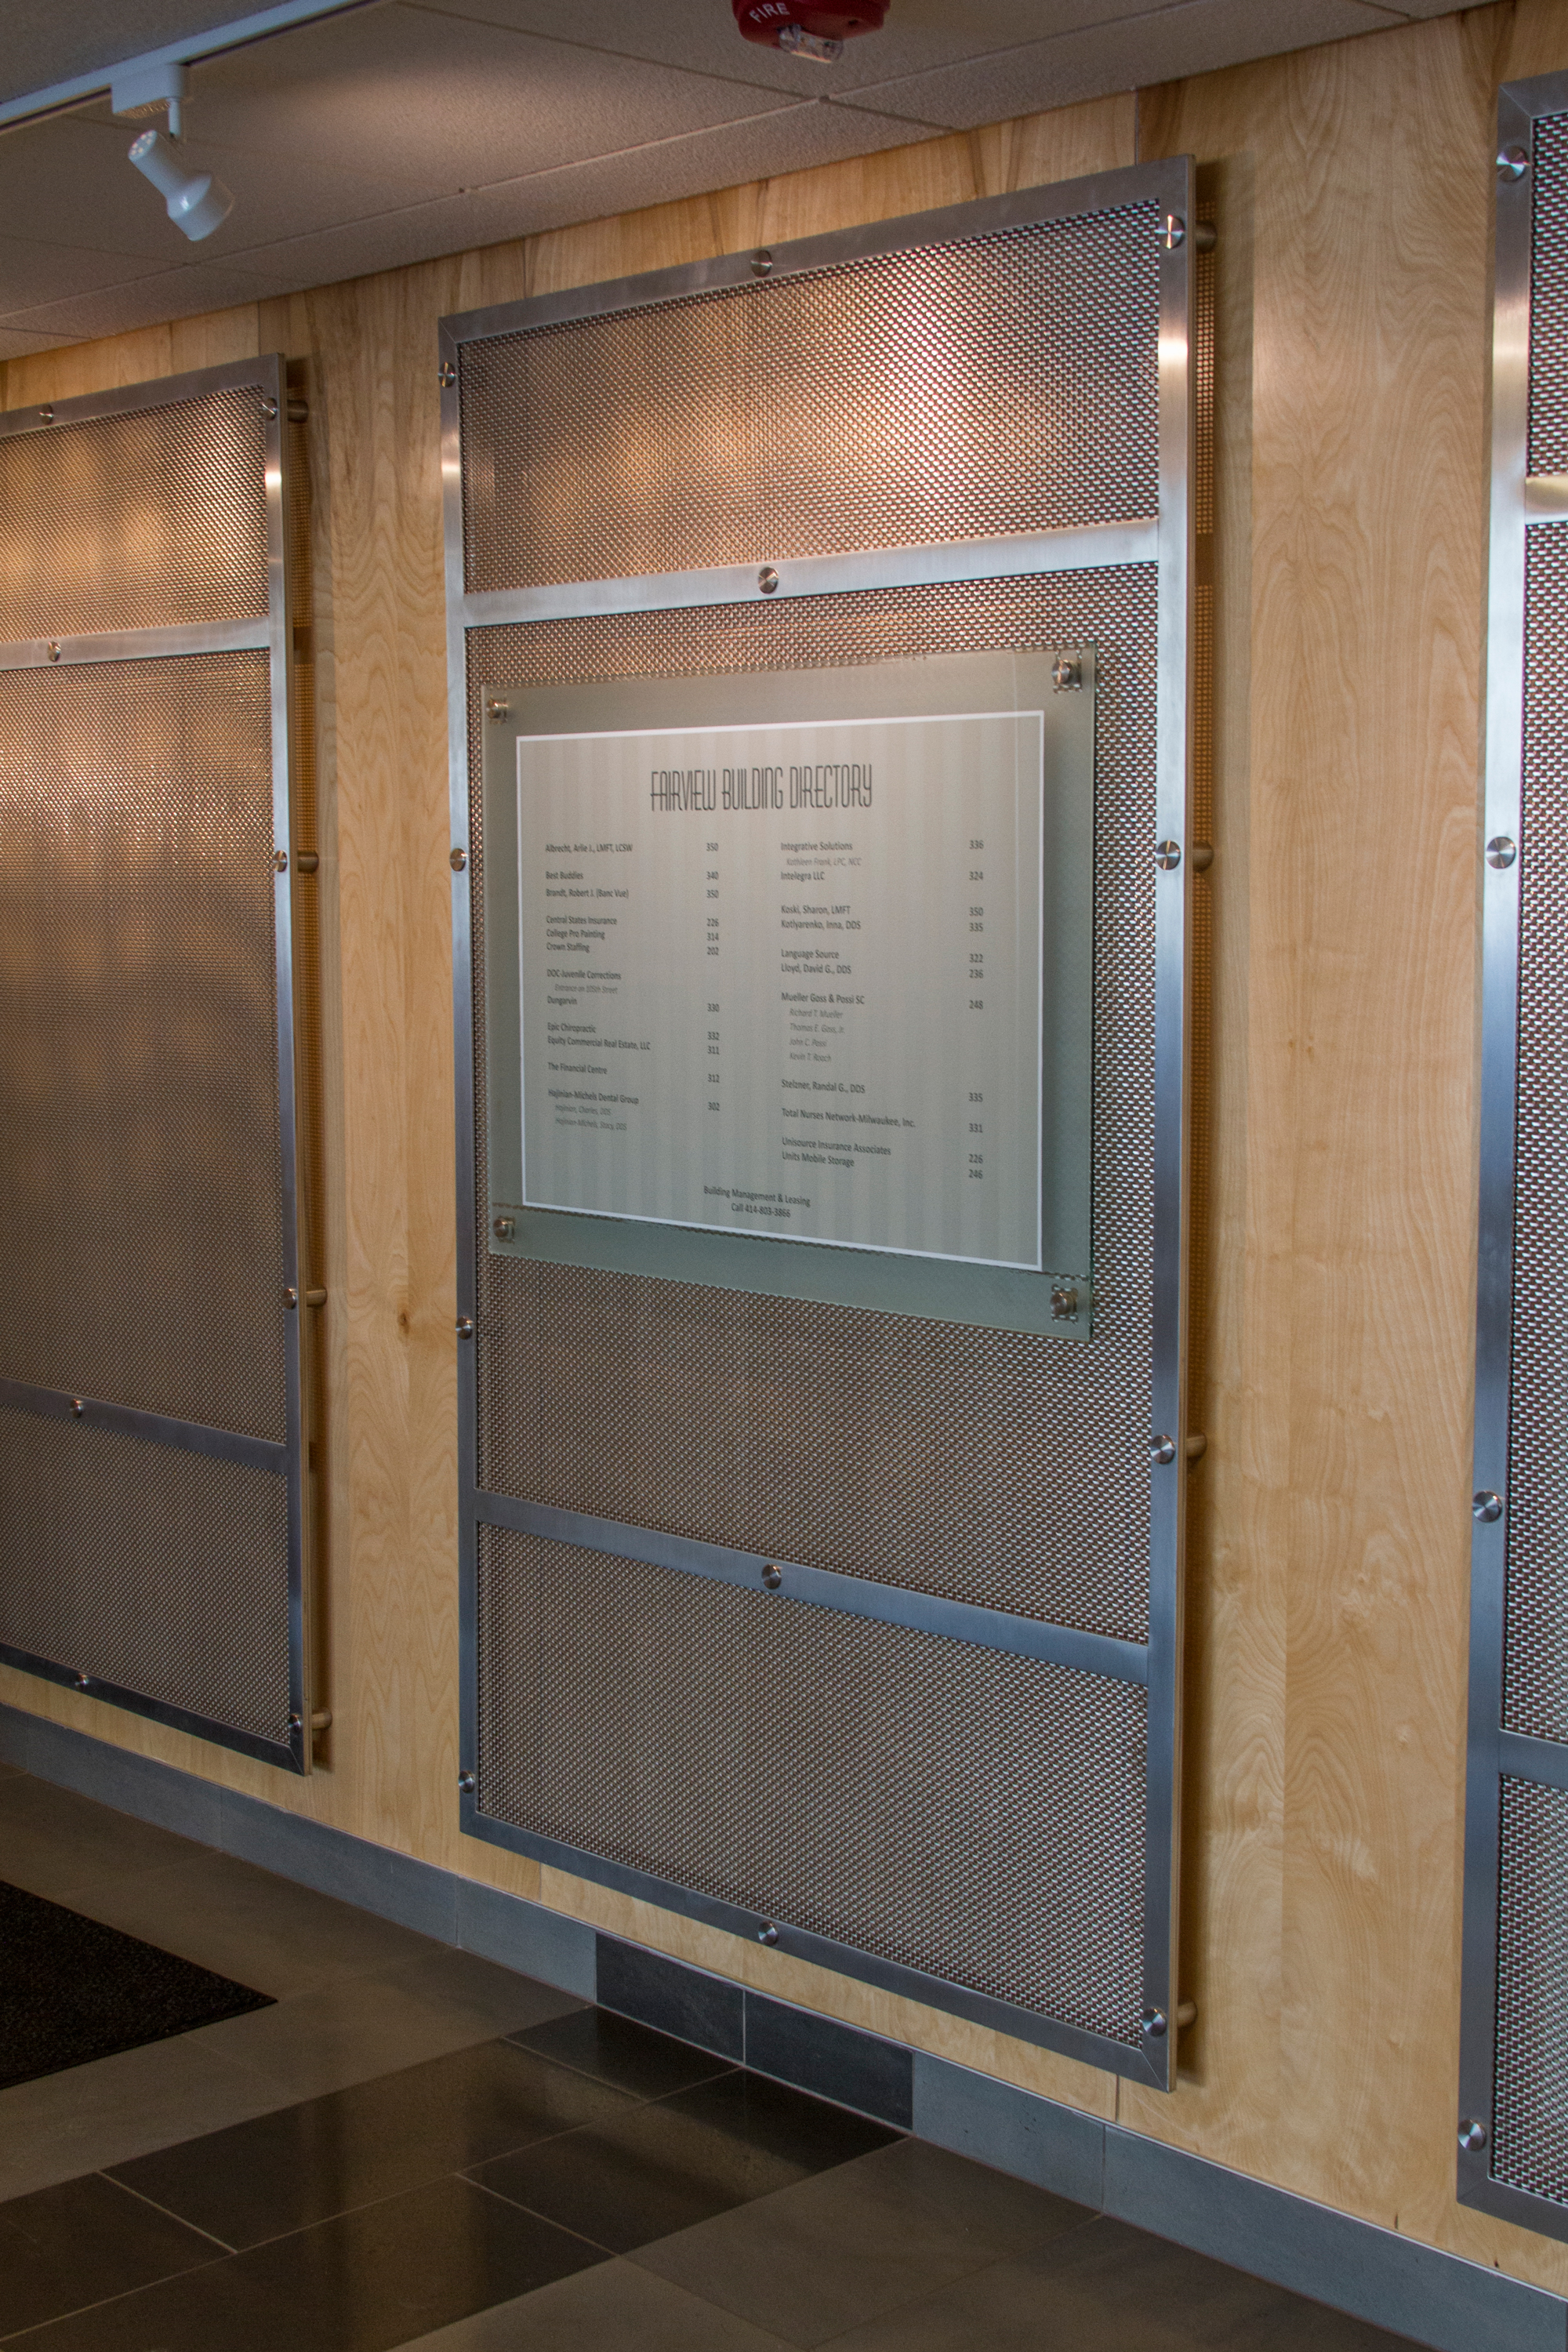 The main goal of the project was to not only provide a modern look to the lobby, but to obscure the large vent registers on the walls while still allowing air to pass through.